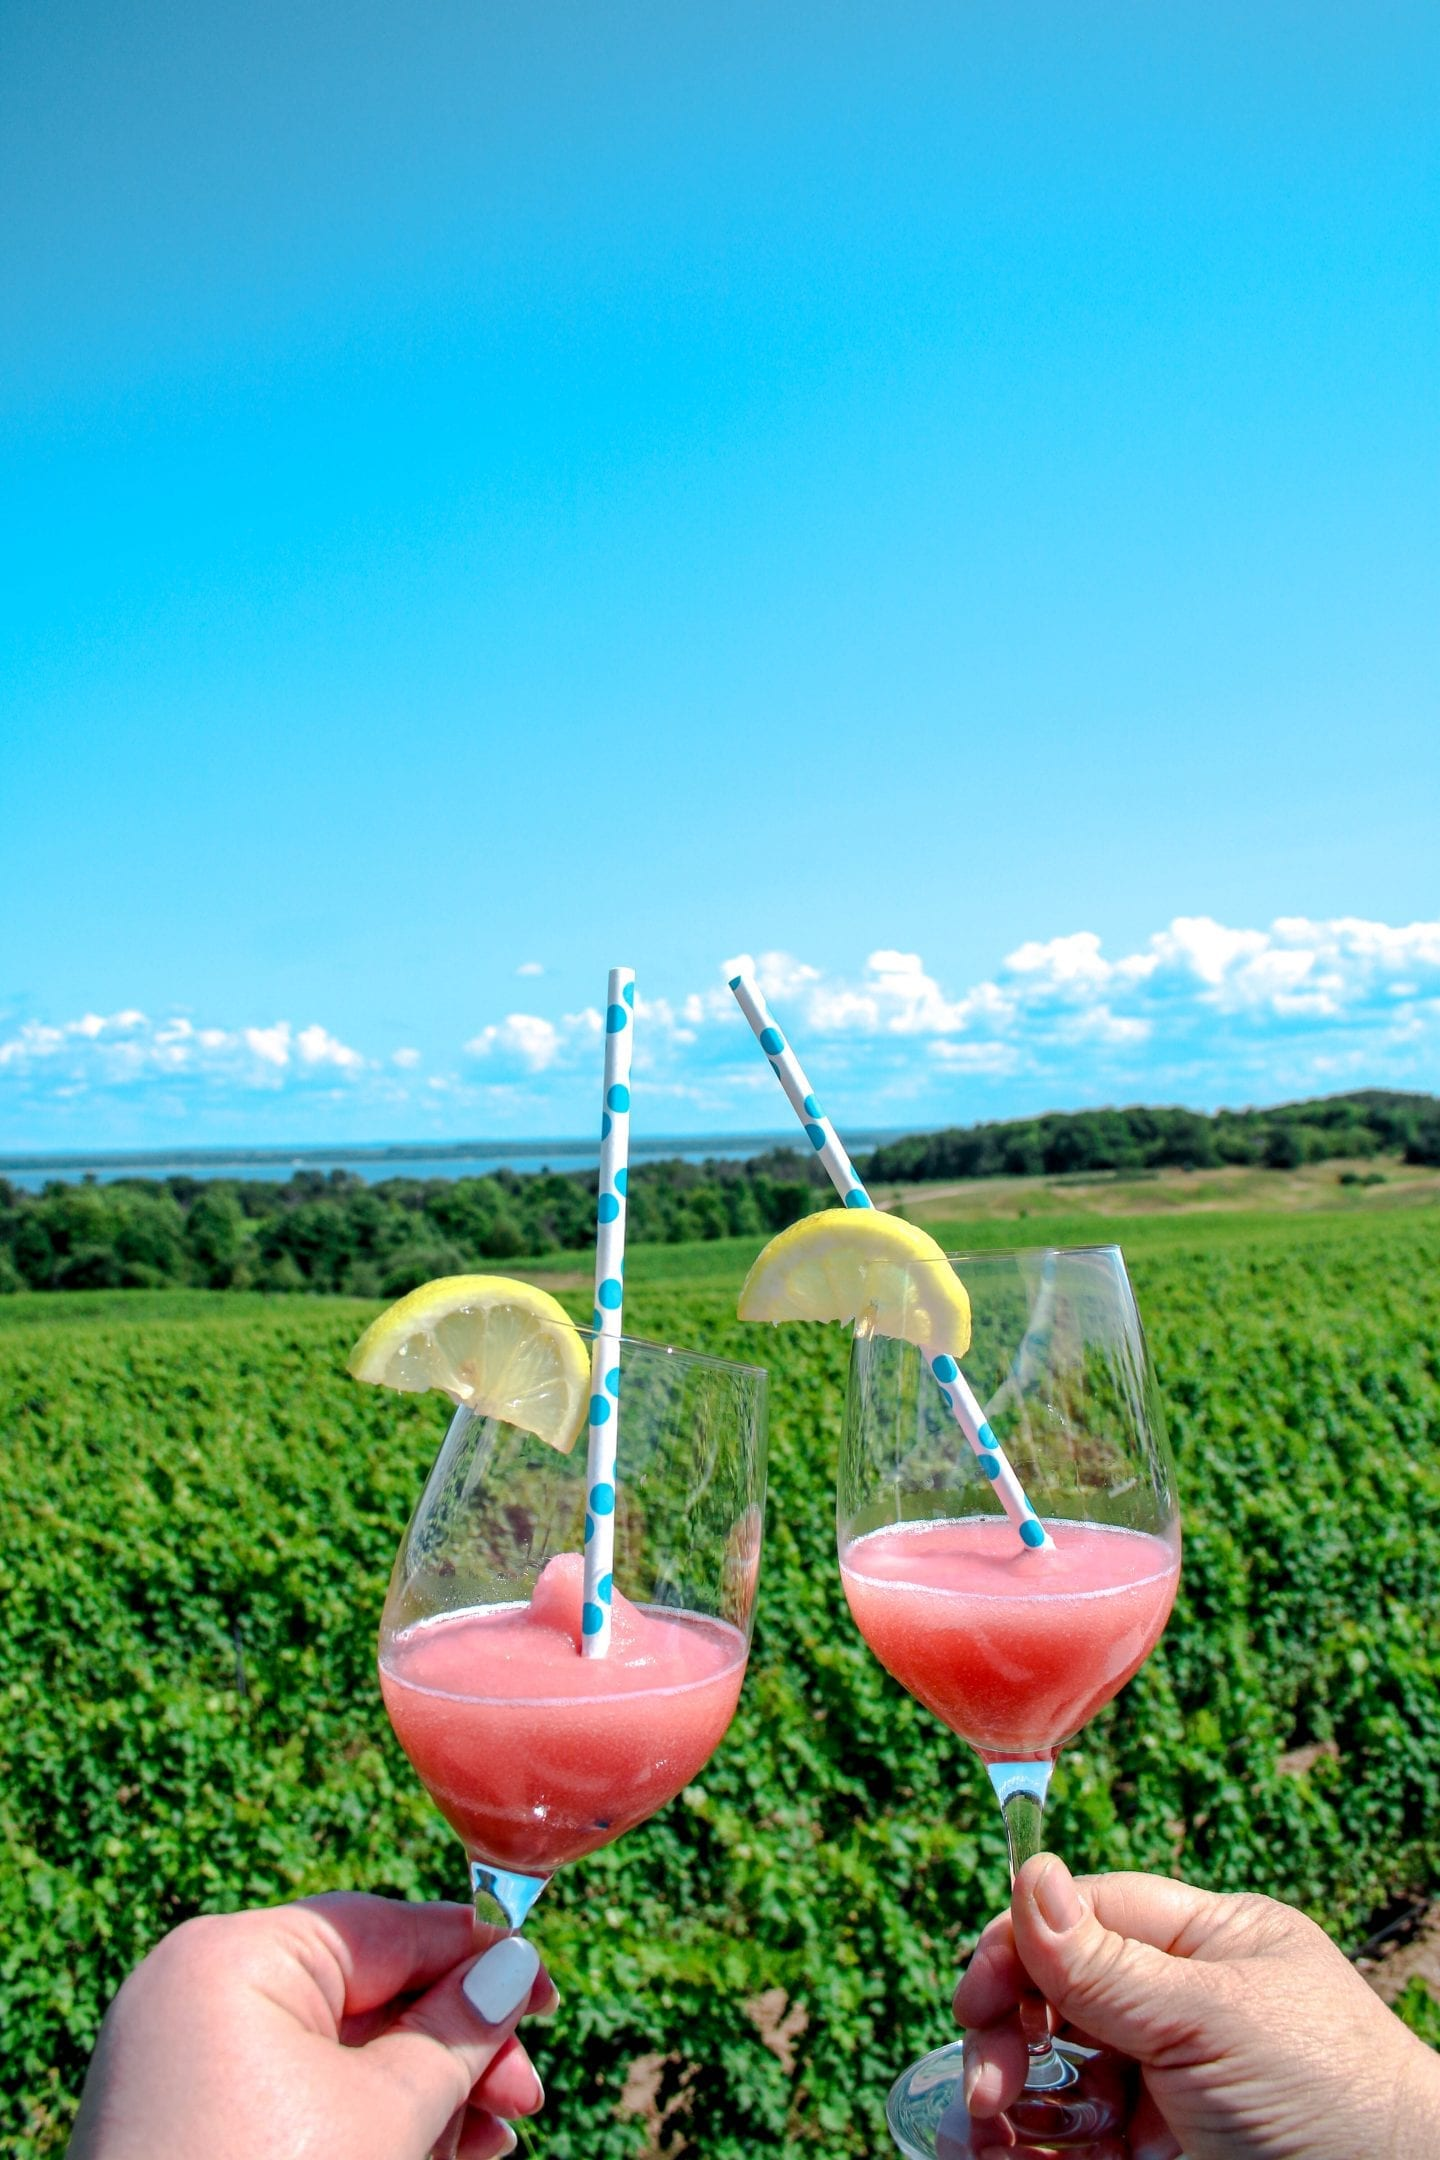 Brys Estate Vineyard: The Must Visit Winery In Traverse City